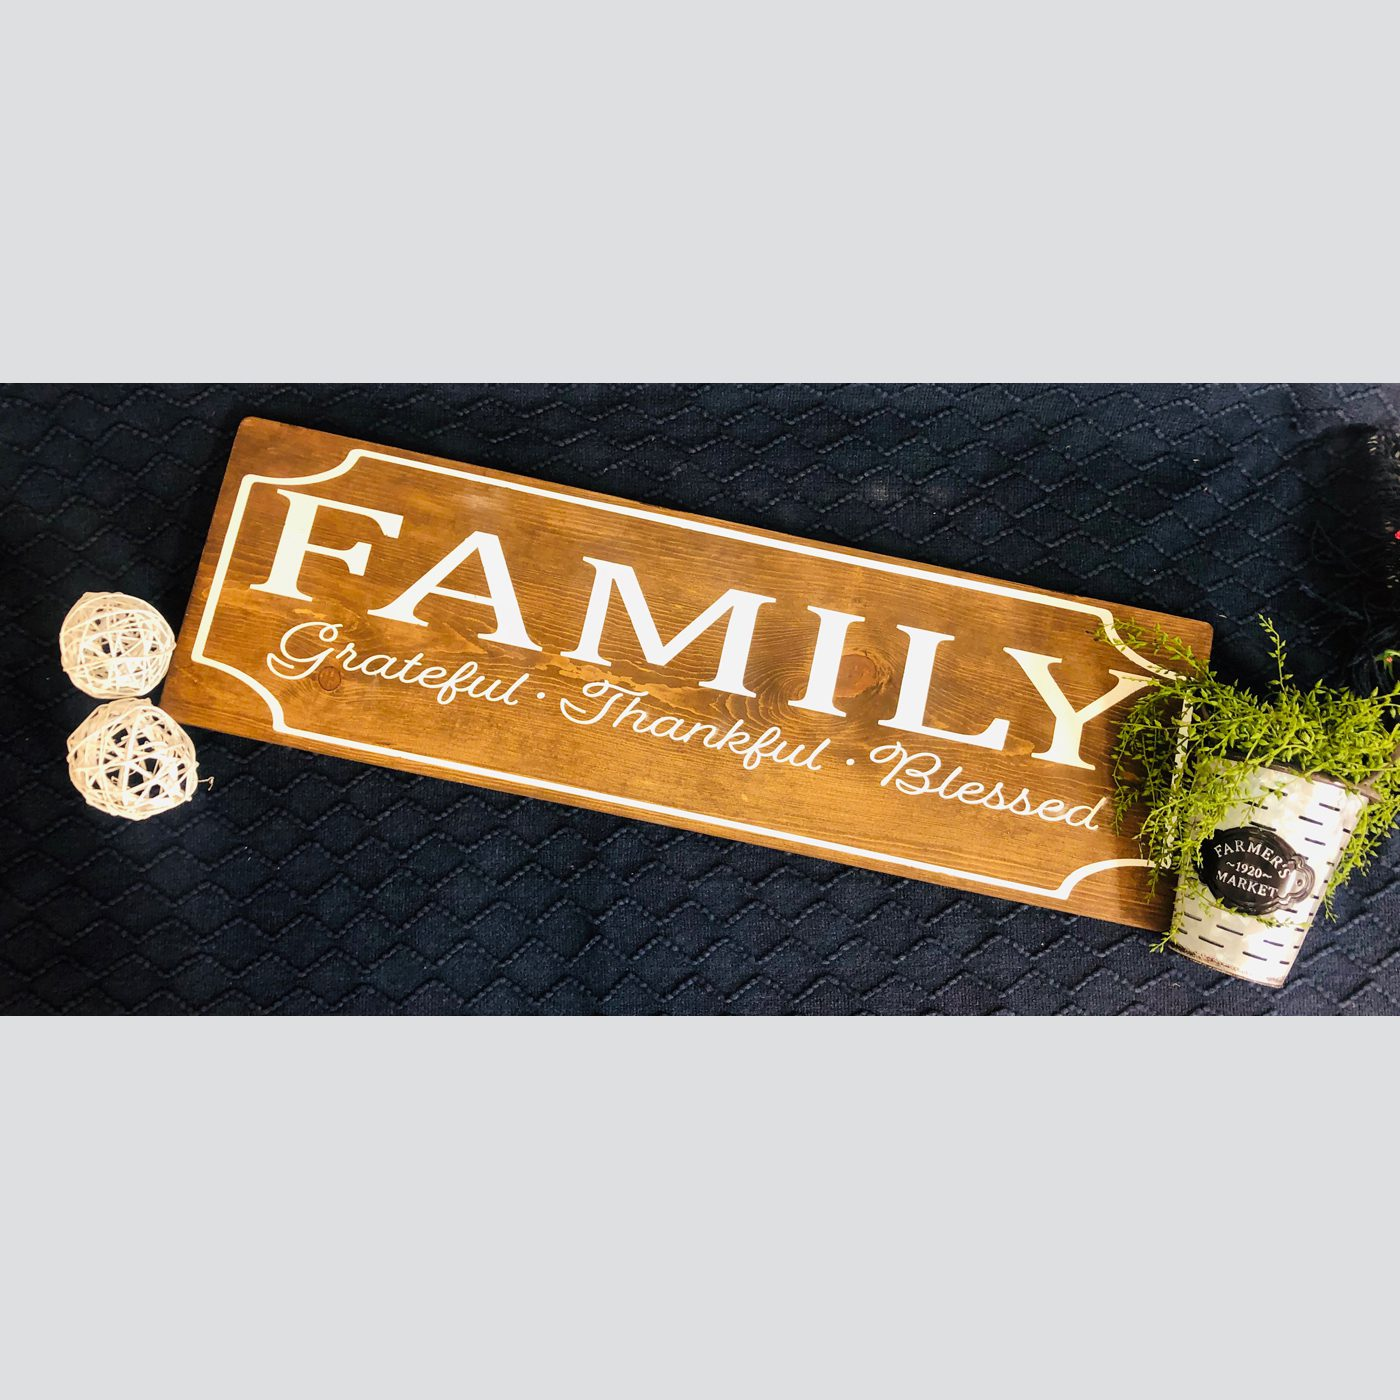 Family- Grateful, Thankful, Blessed DIY wood sign